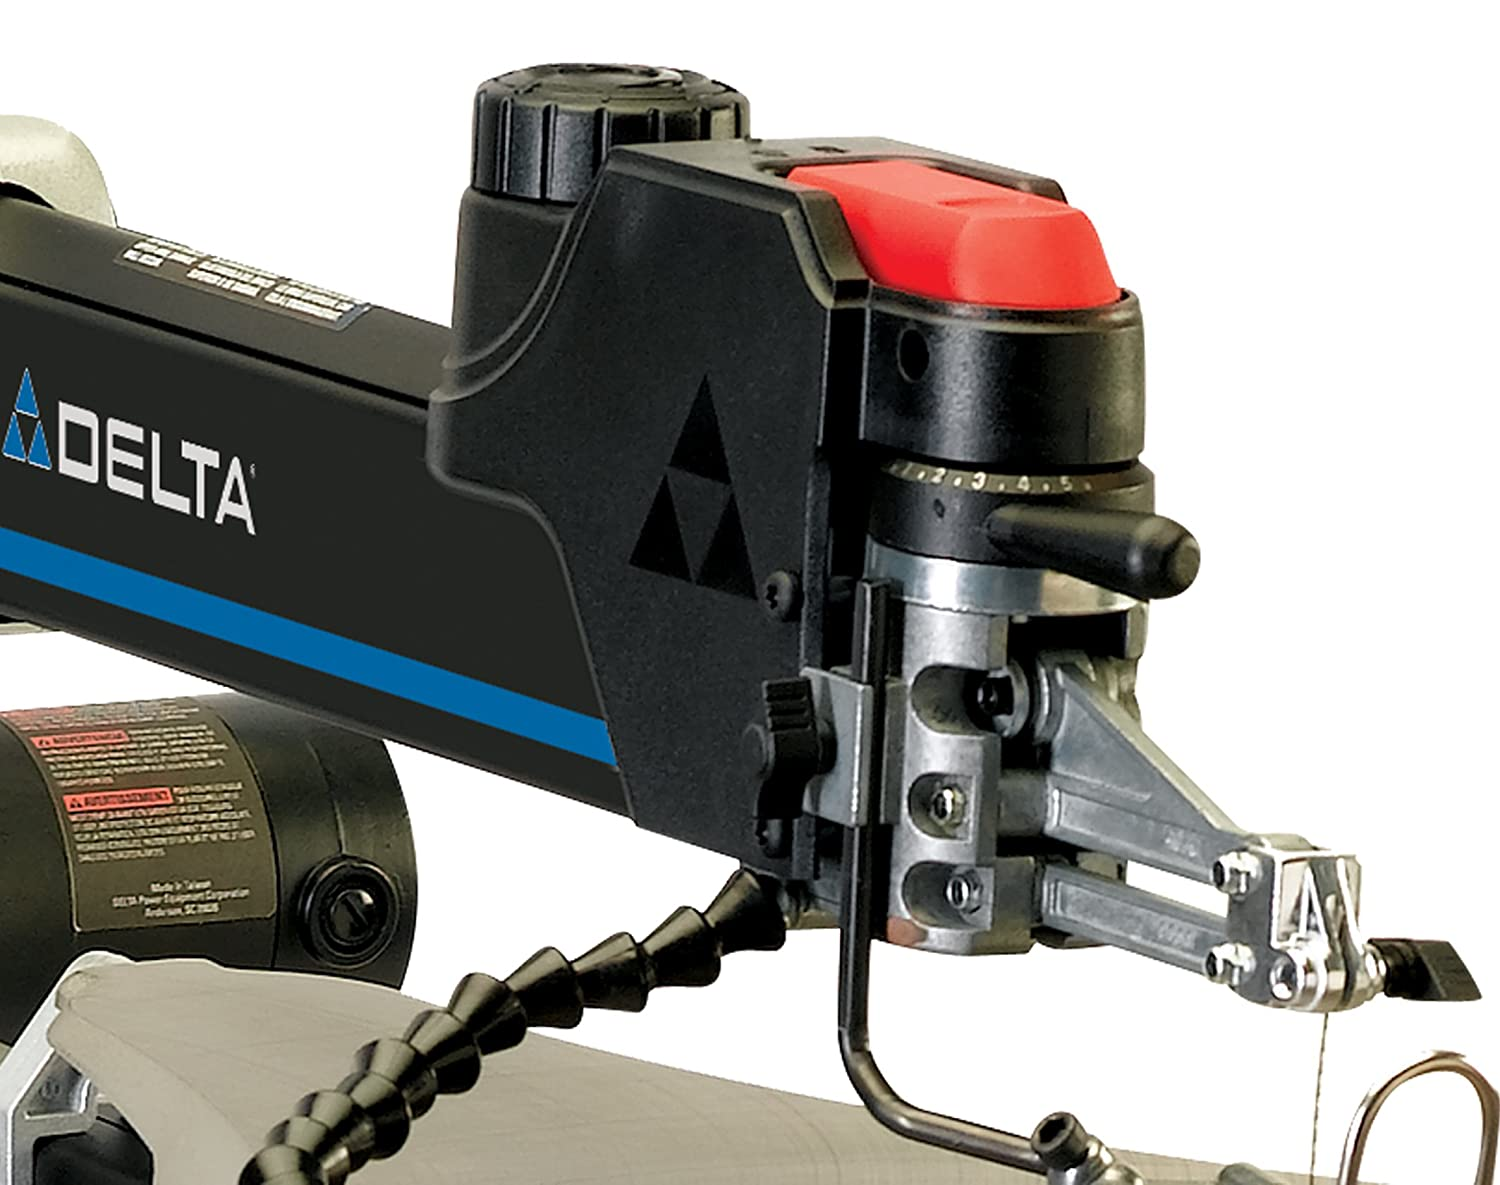 Delta power tools 40 694 20 in variable speed scroll saw amazon greentooth Choice Image